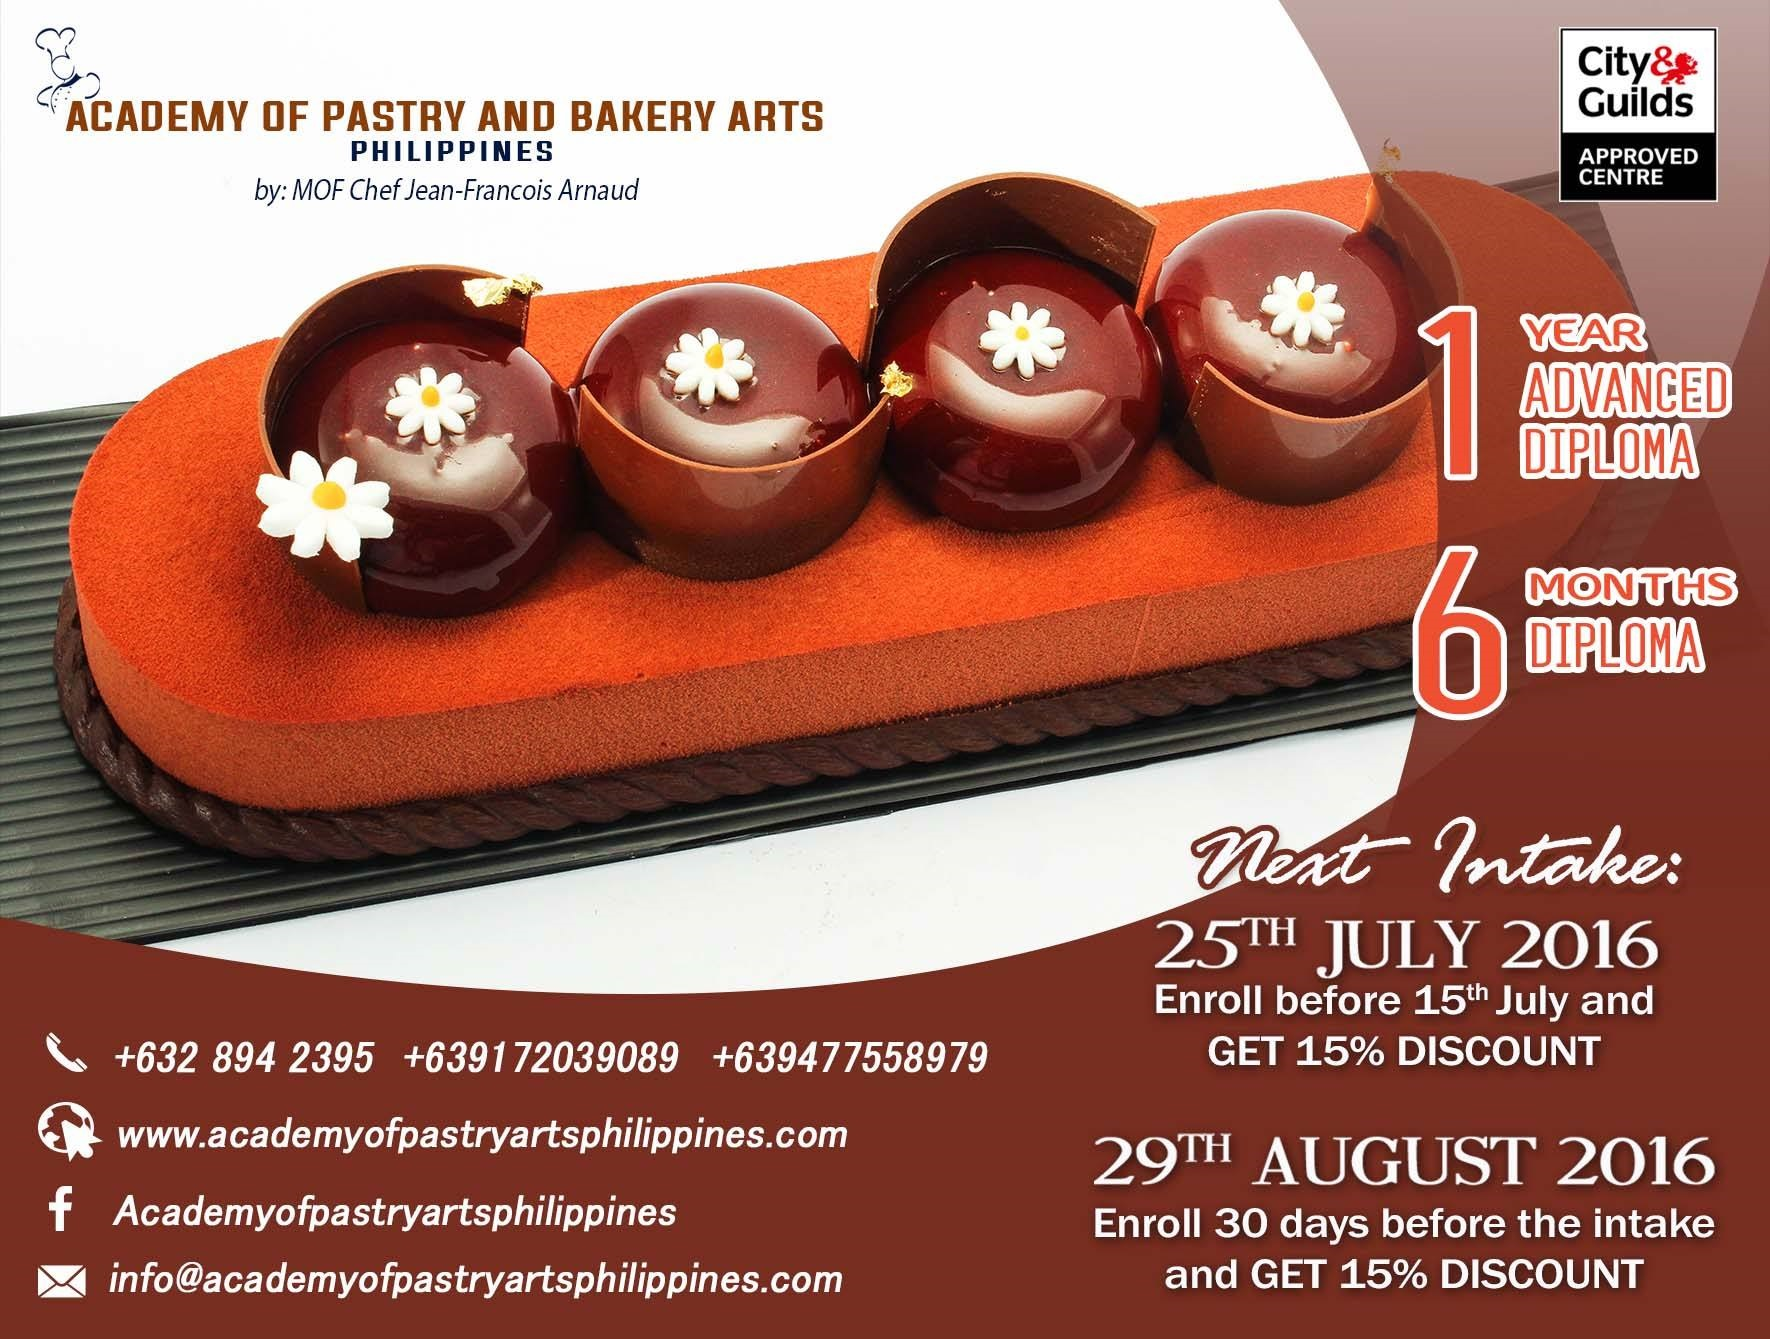 1-academy-of-pastry-bakery-arts-international-school-philippines-promotions-2016-july